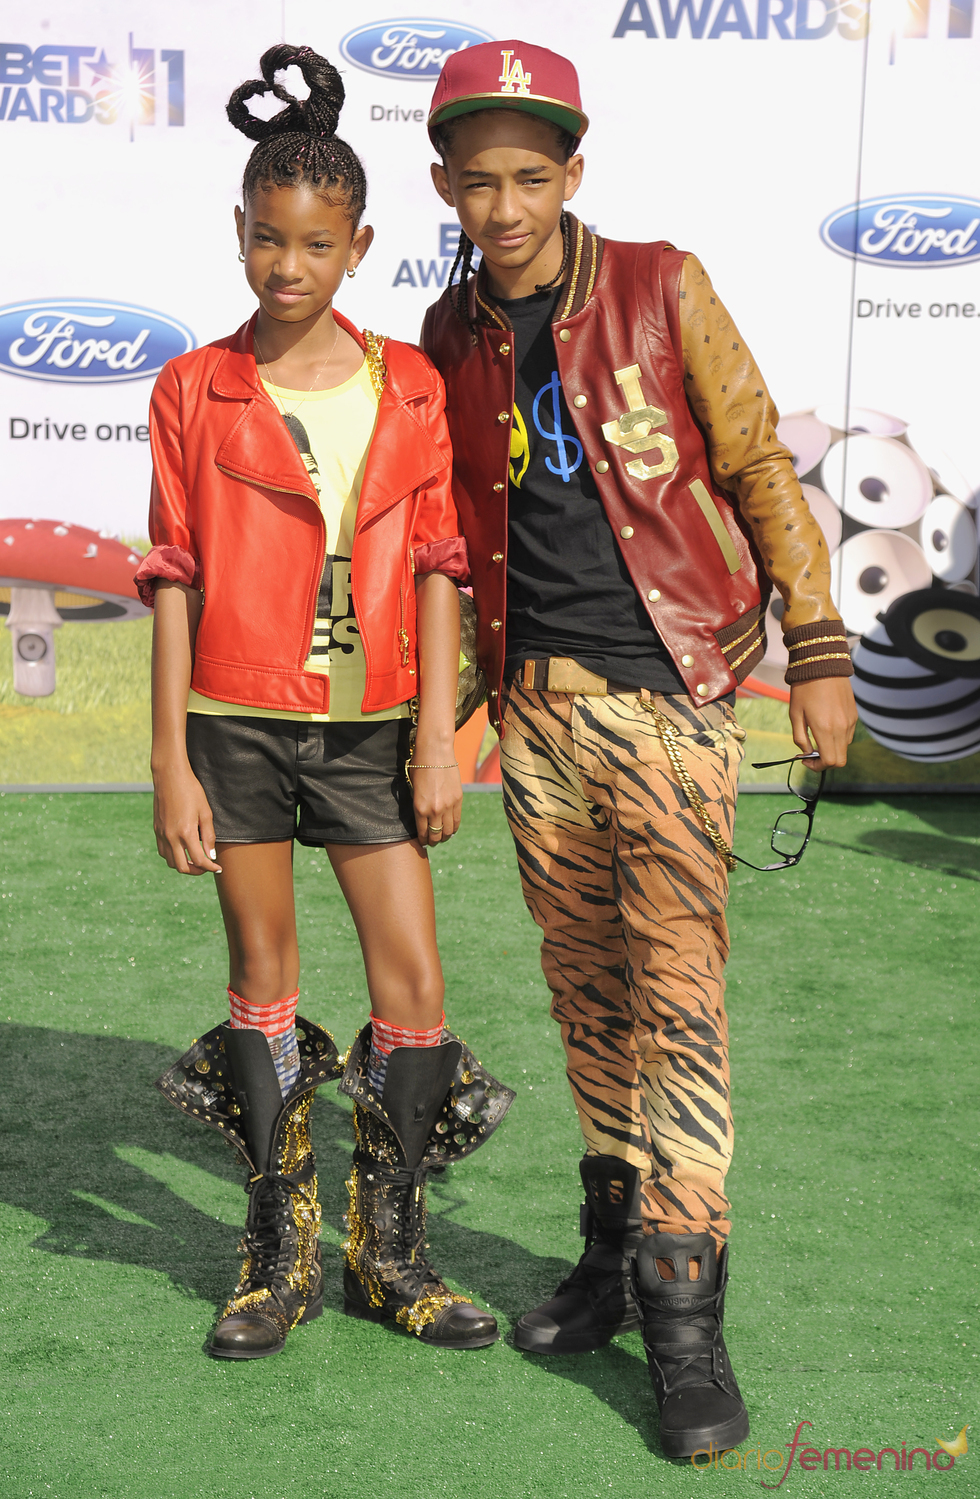 Willow y Jaden Smith a su llegada a los premios BET Awards 2011